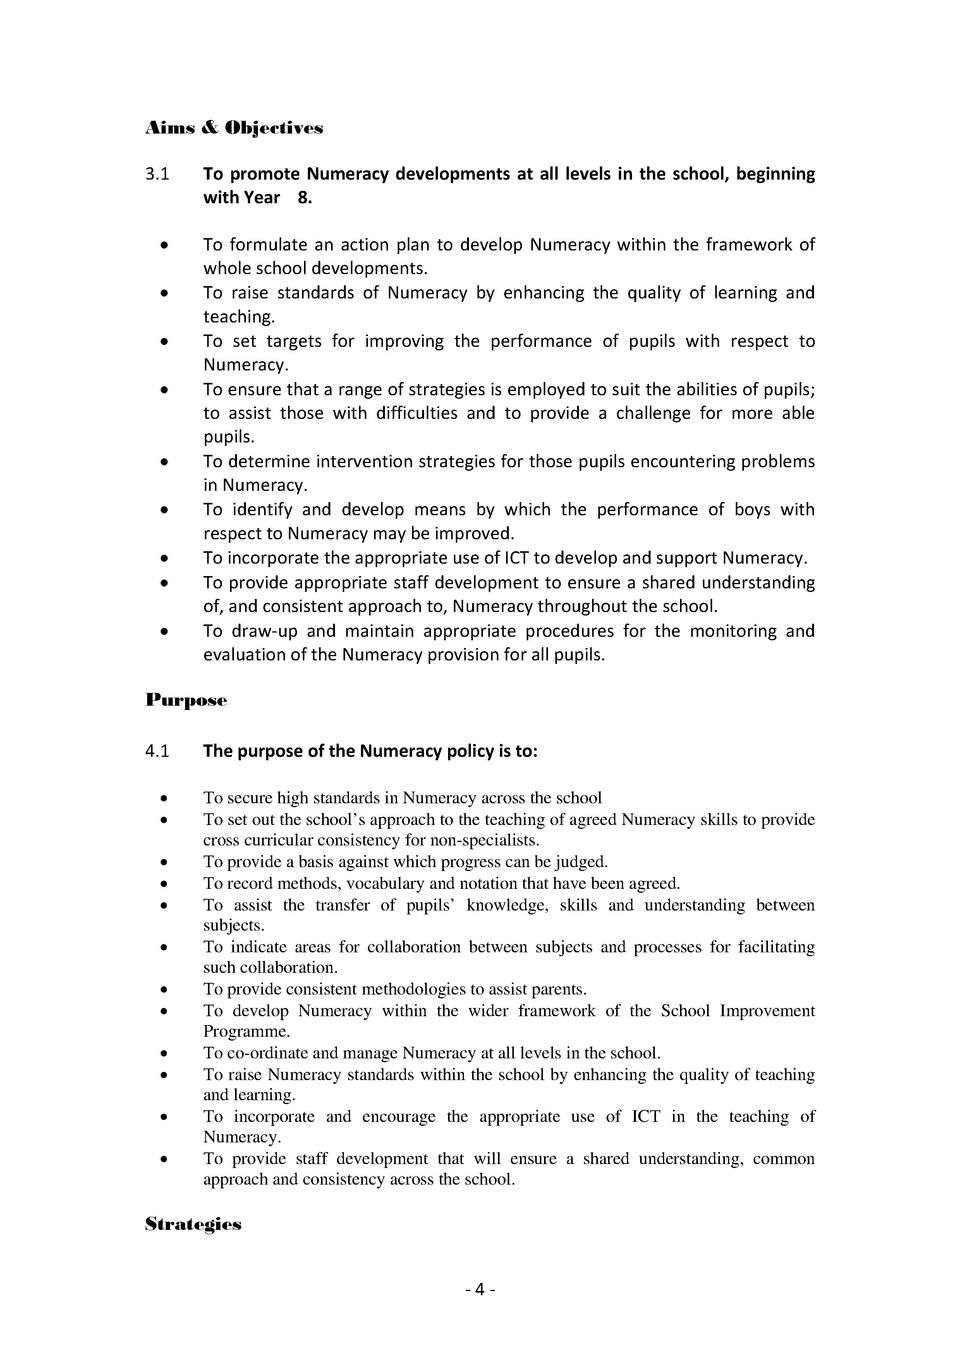 Aims   Objectives 3.1      To   promote   Numeracy   developments   at   all   levels   in   the   school,   beginning   w...